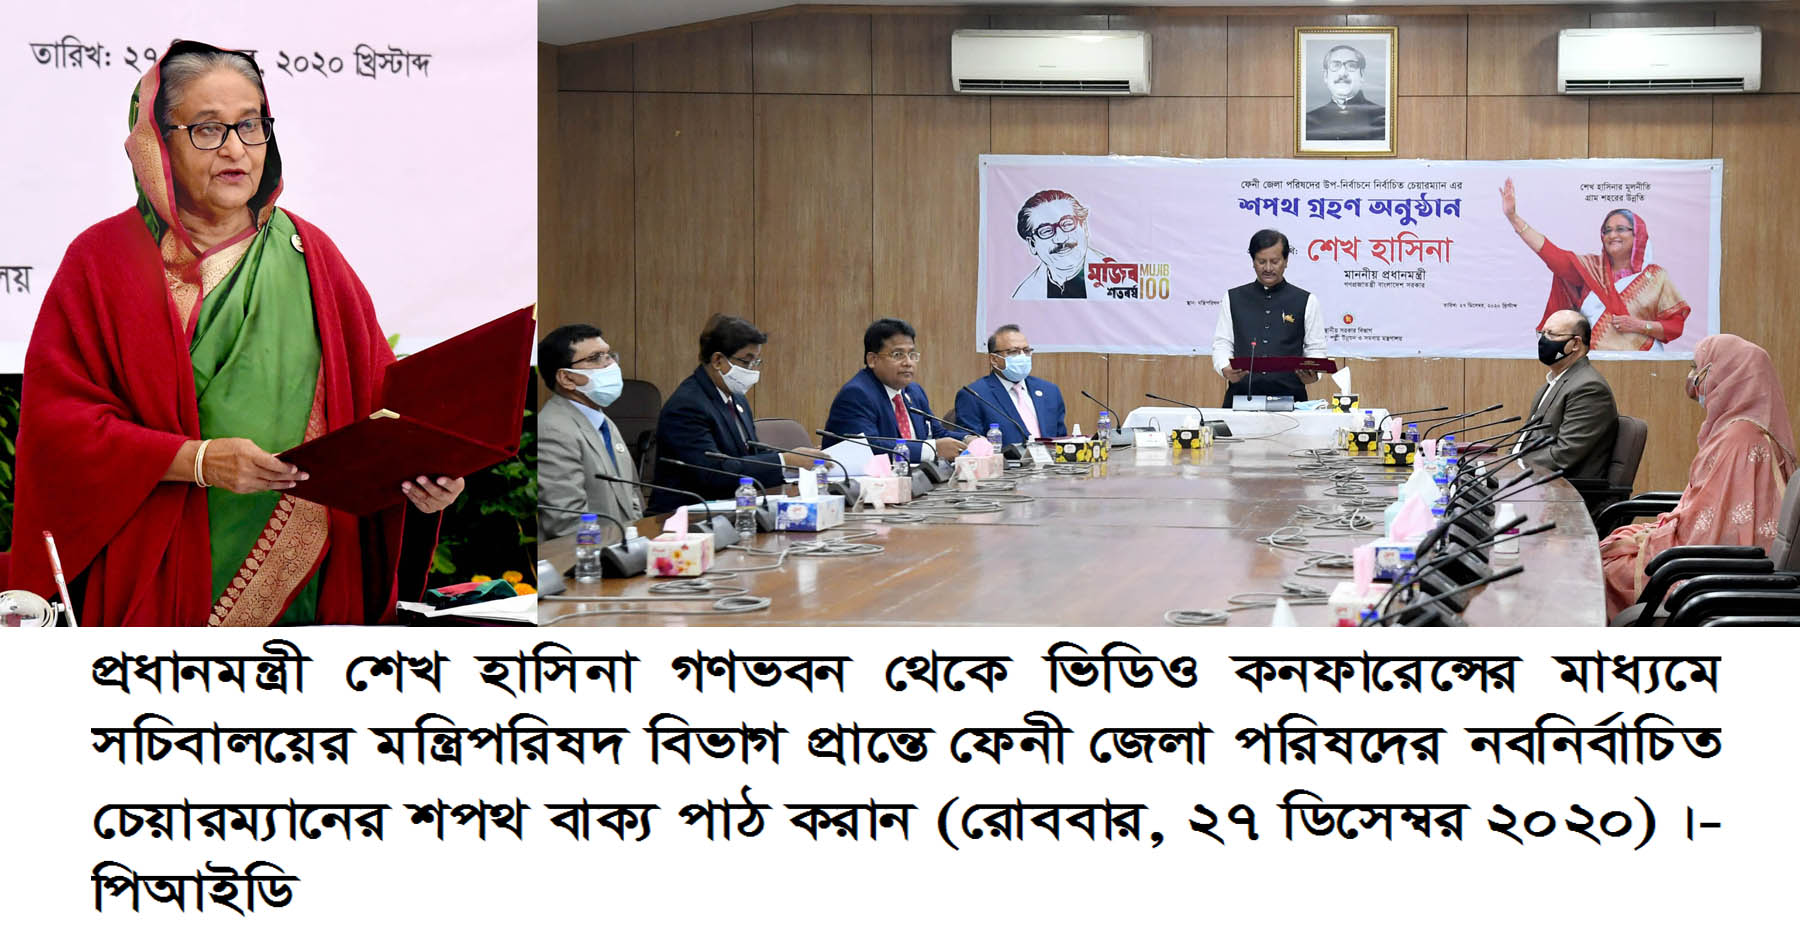 Sheikh Hasina attends special event via video conferencing